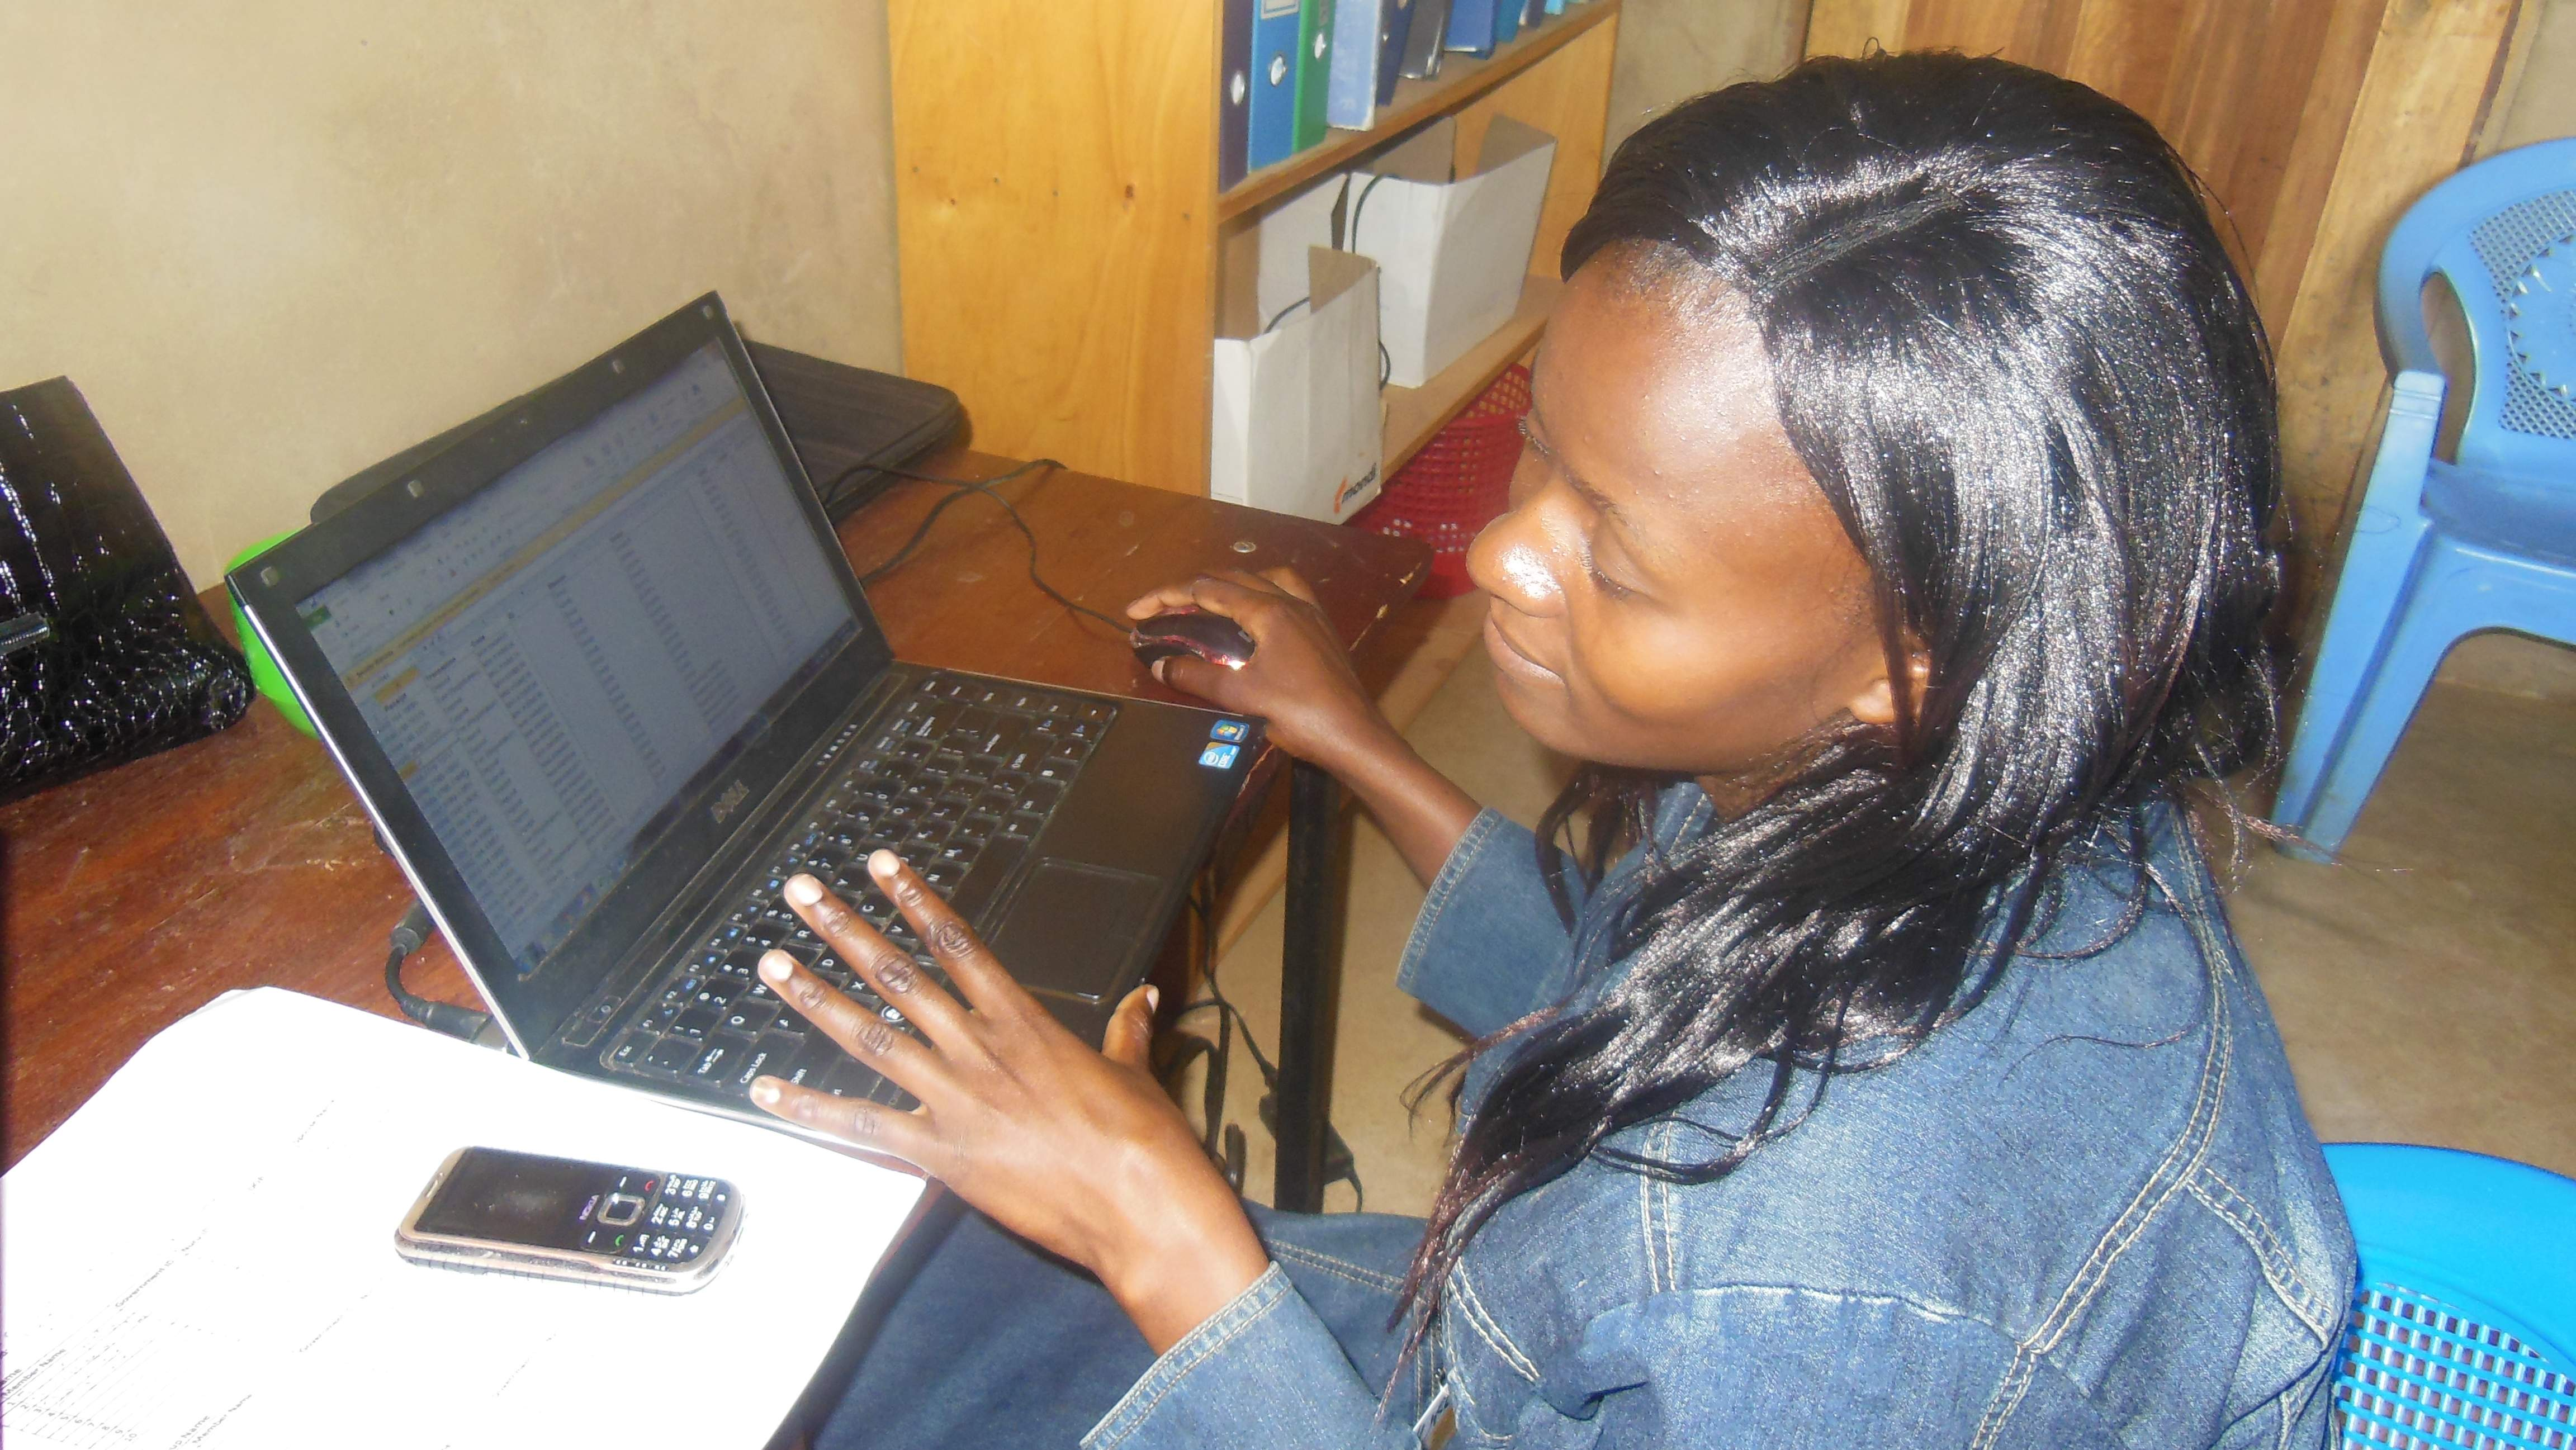 Christine Alvitsa, Nuru Kenya Financial Inclusion Program Information Systems Specialist, enters data into Mifos at the Nuru Kenya office.